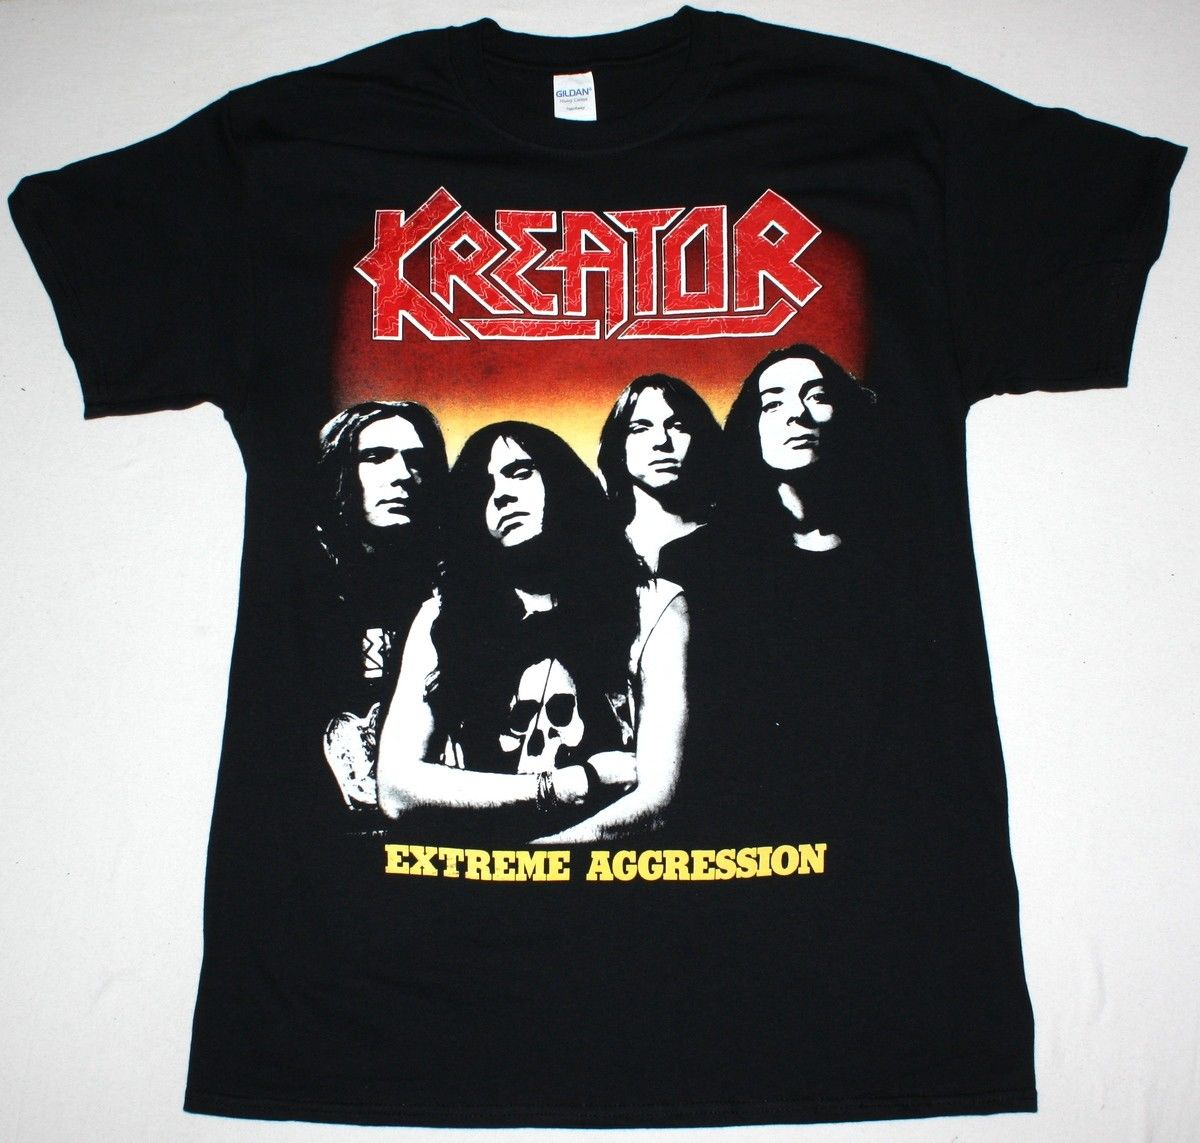 KREATOR EXTREME AGGRESSION THRASH METAL DESTRUCTION TANKARD NEW BLACK T-SHIRT Harajuku P ...